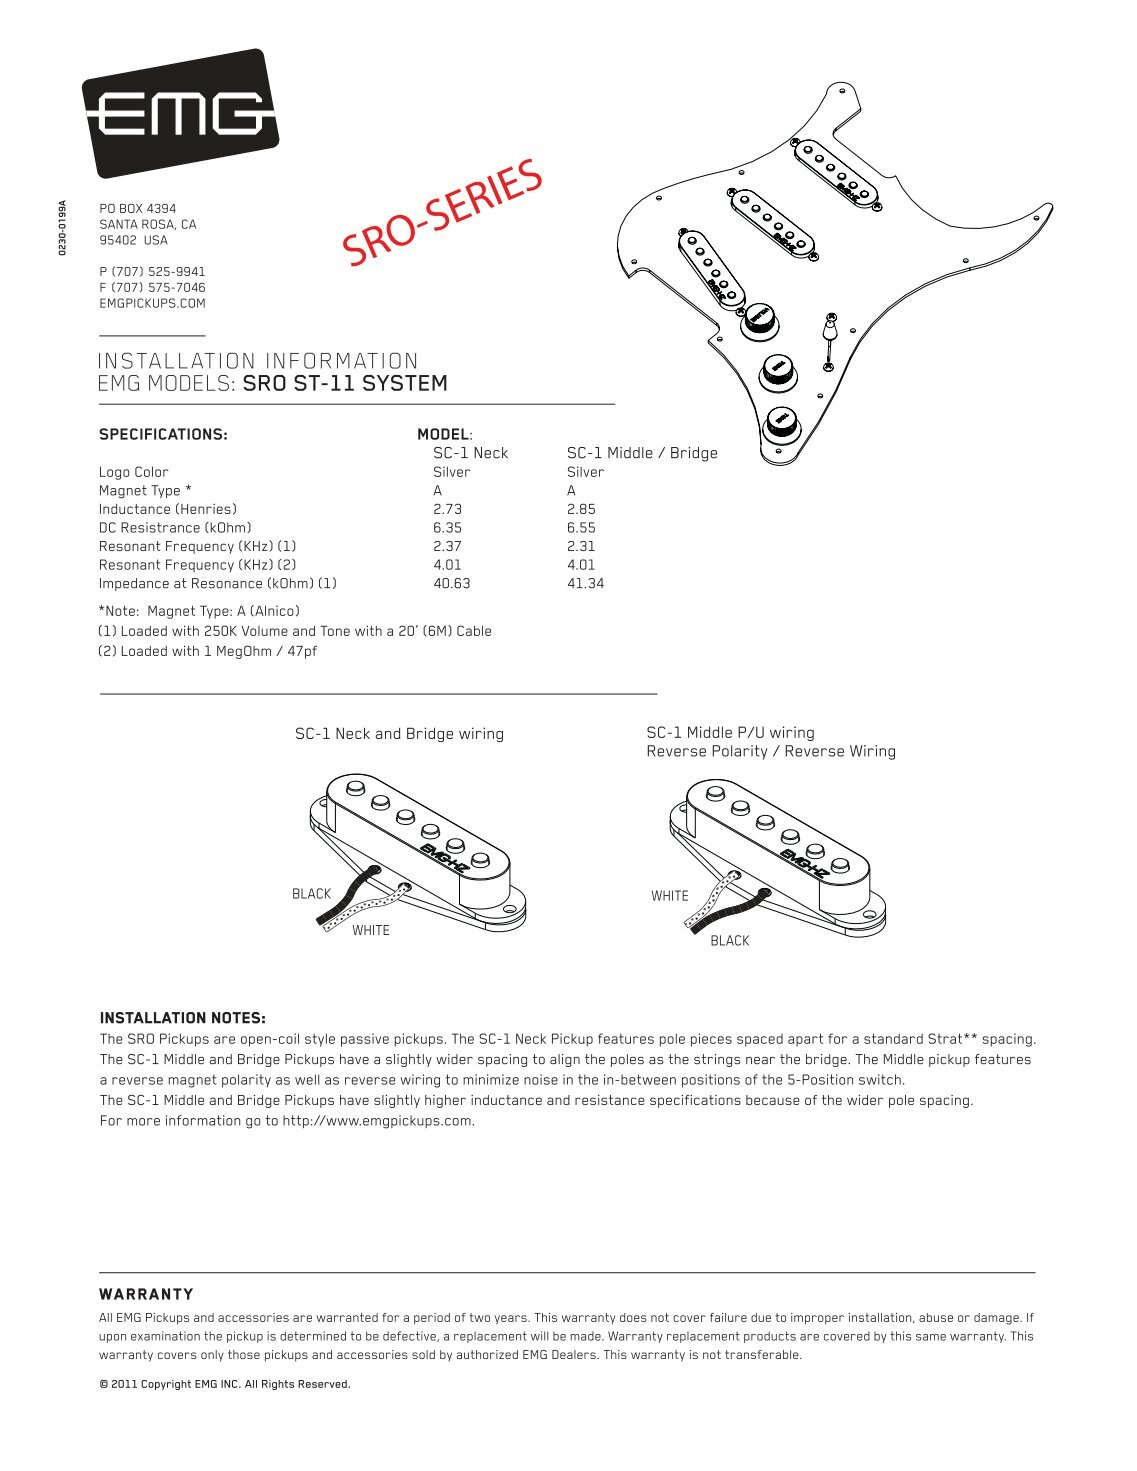 Emg Hsh Wiring Diagram Manual Guide Stratocaster Moreover Fender Solderless Guitar Diagrams Strat